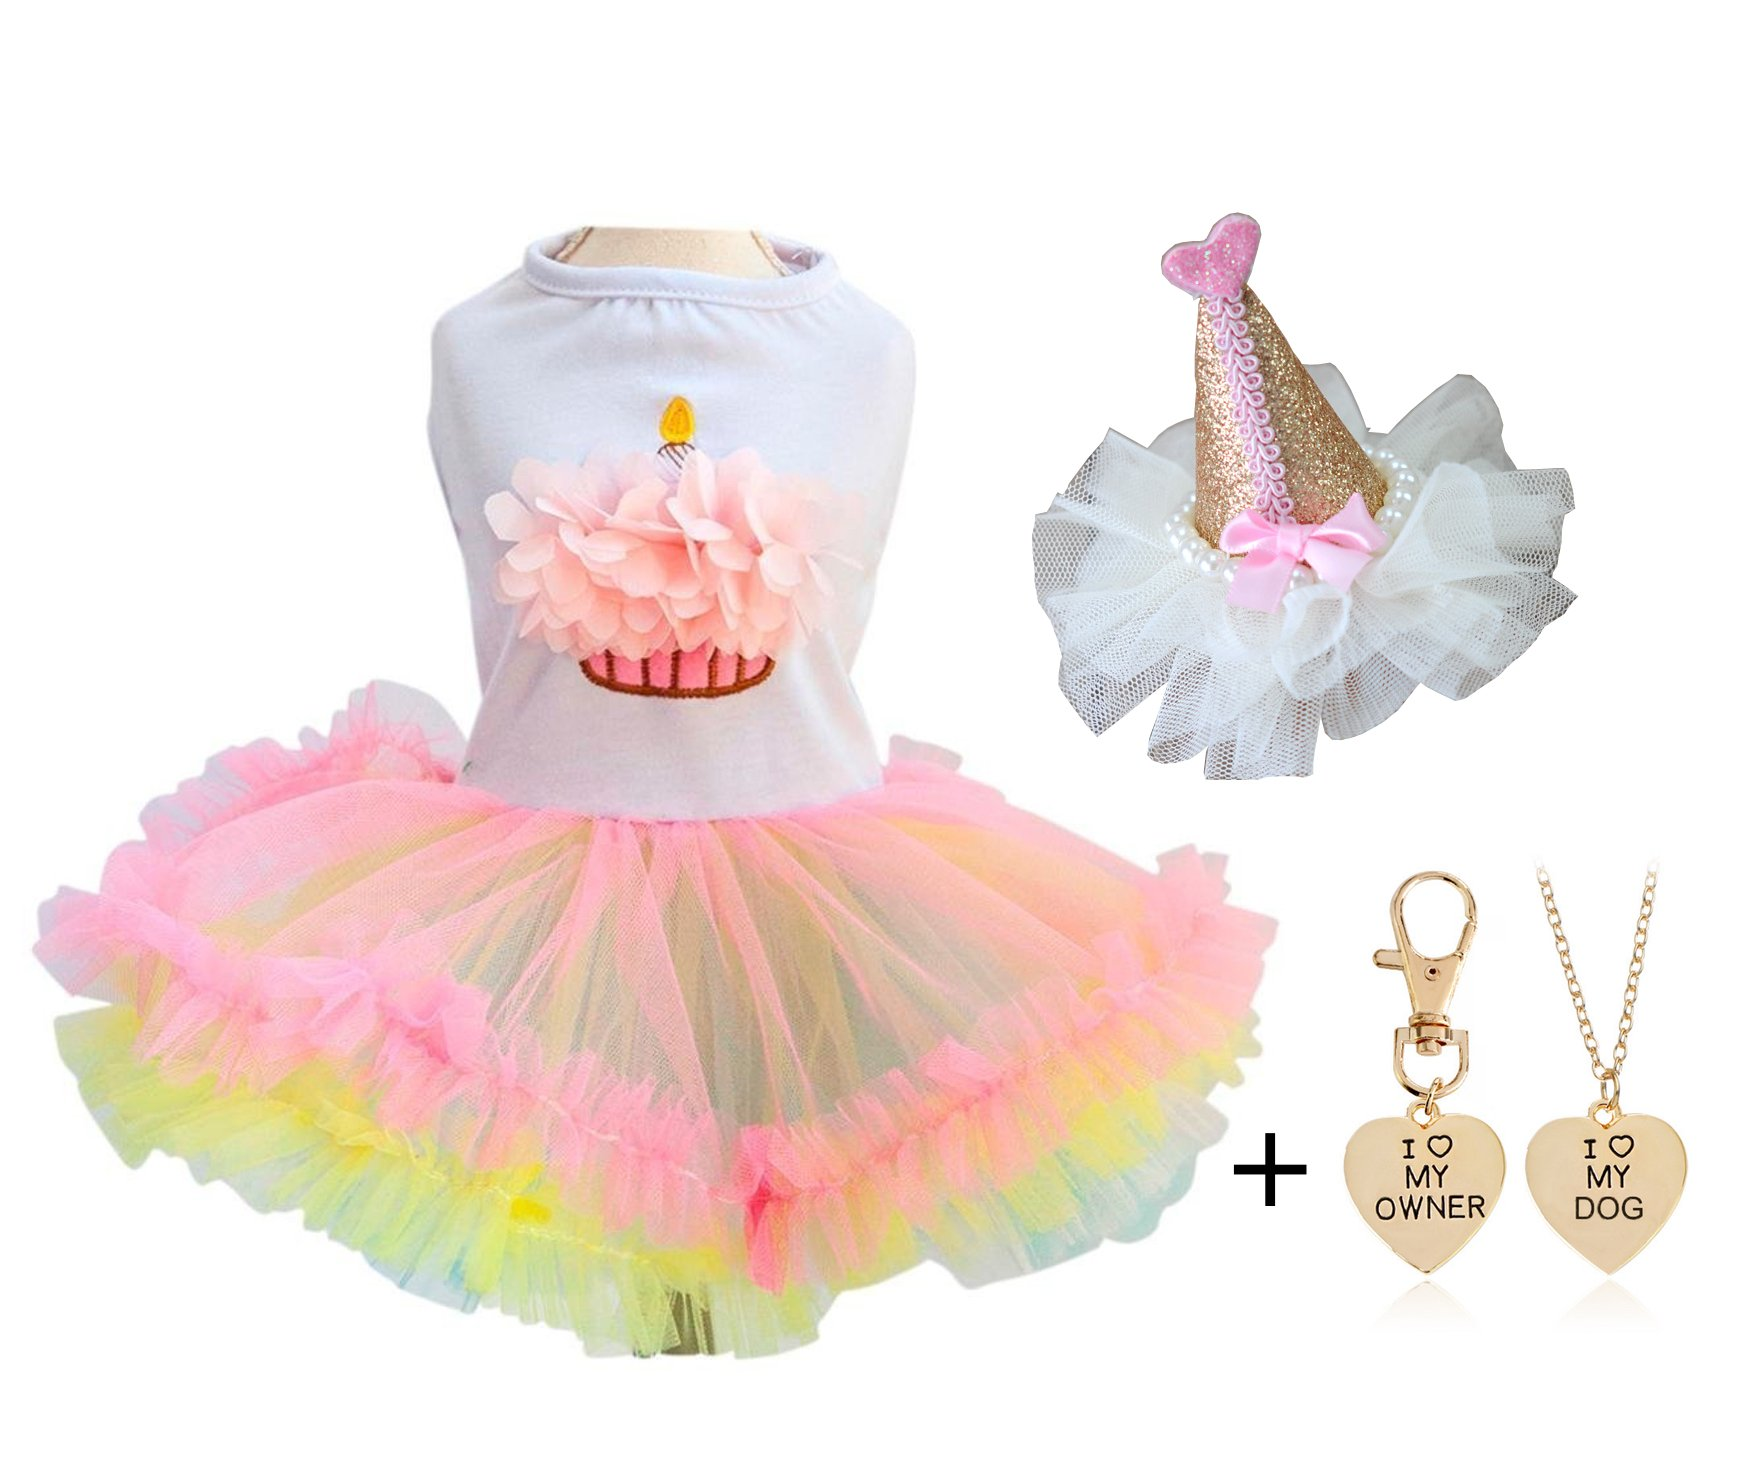 Ollypet Set of 2 Cute Clothes For Small Dogs Tutu Dresses for Girls Cupcake Birthday Hat Pet Apparel Cats Puppy Summer FREE GIFT XL by Ollypet